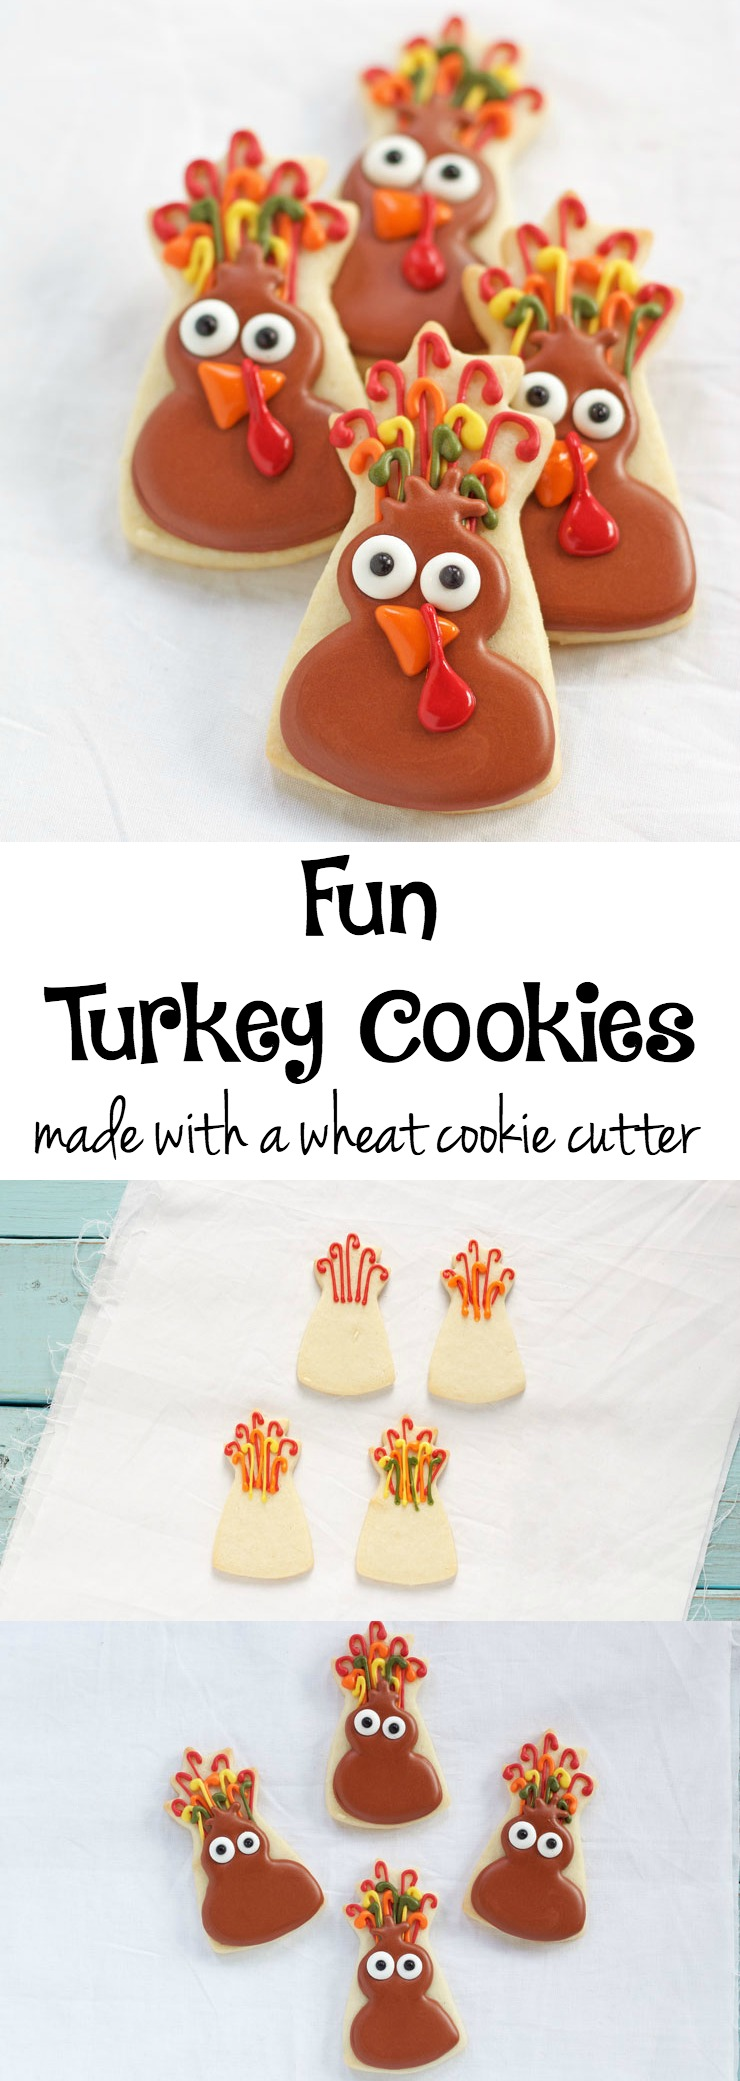 Fun Turkey Cookies | The Bearfoot Baker